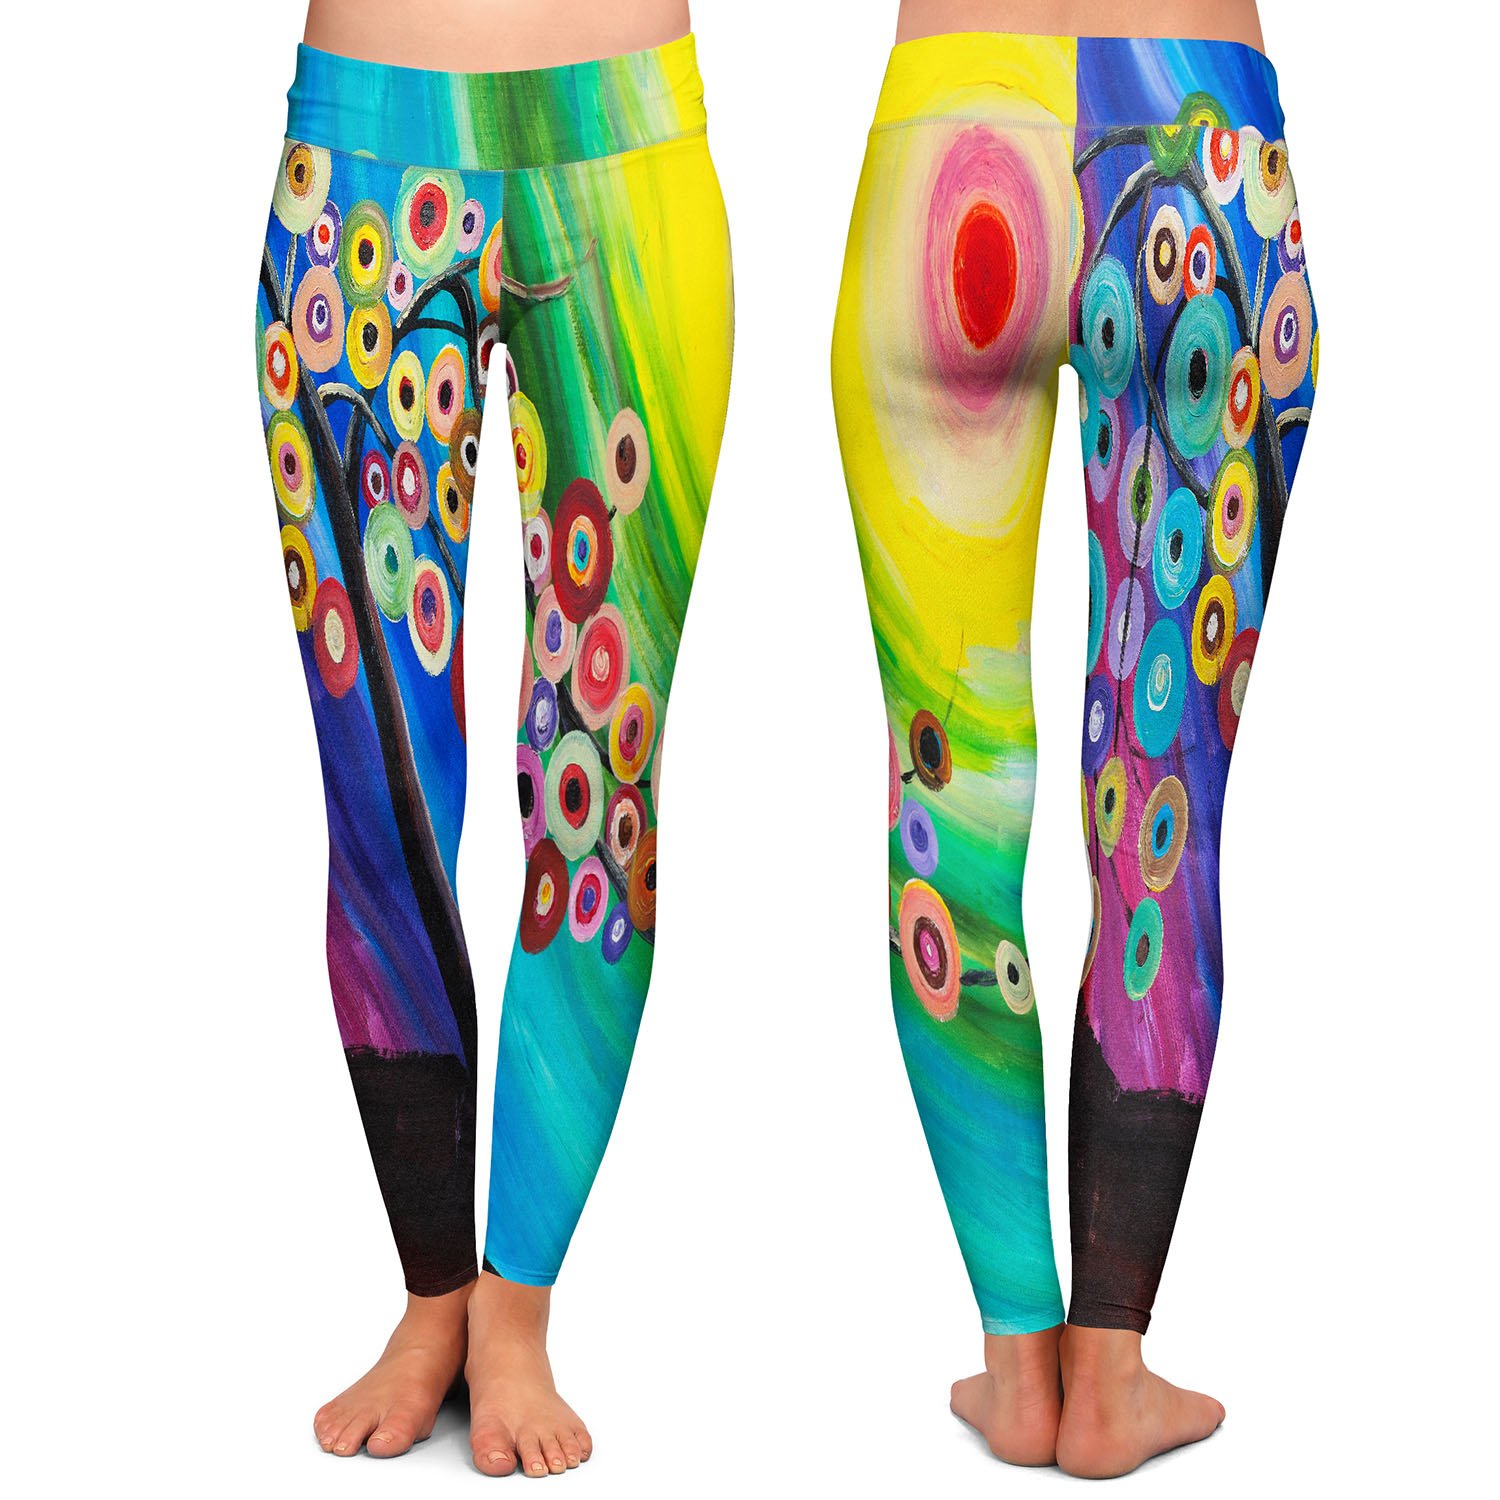 Athletic Yoga Leggings from DiaNoche Designs by Lam Fuk Tim Color Tree XVI